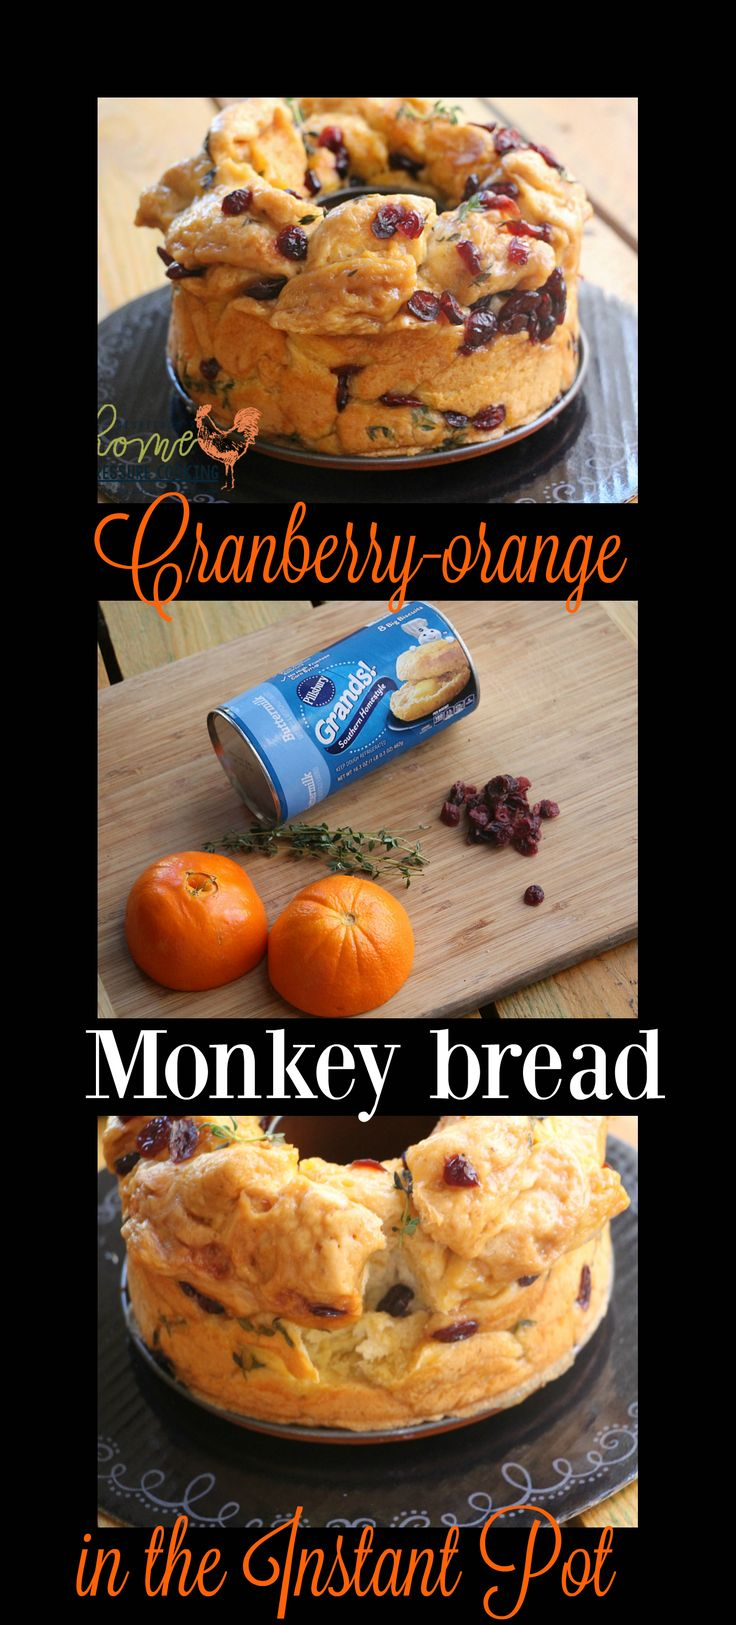 Cranberry orange and thyme monkey bread in the Instant Pot - Home Pressure Cooking